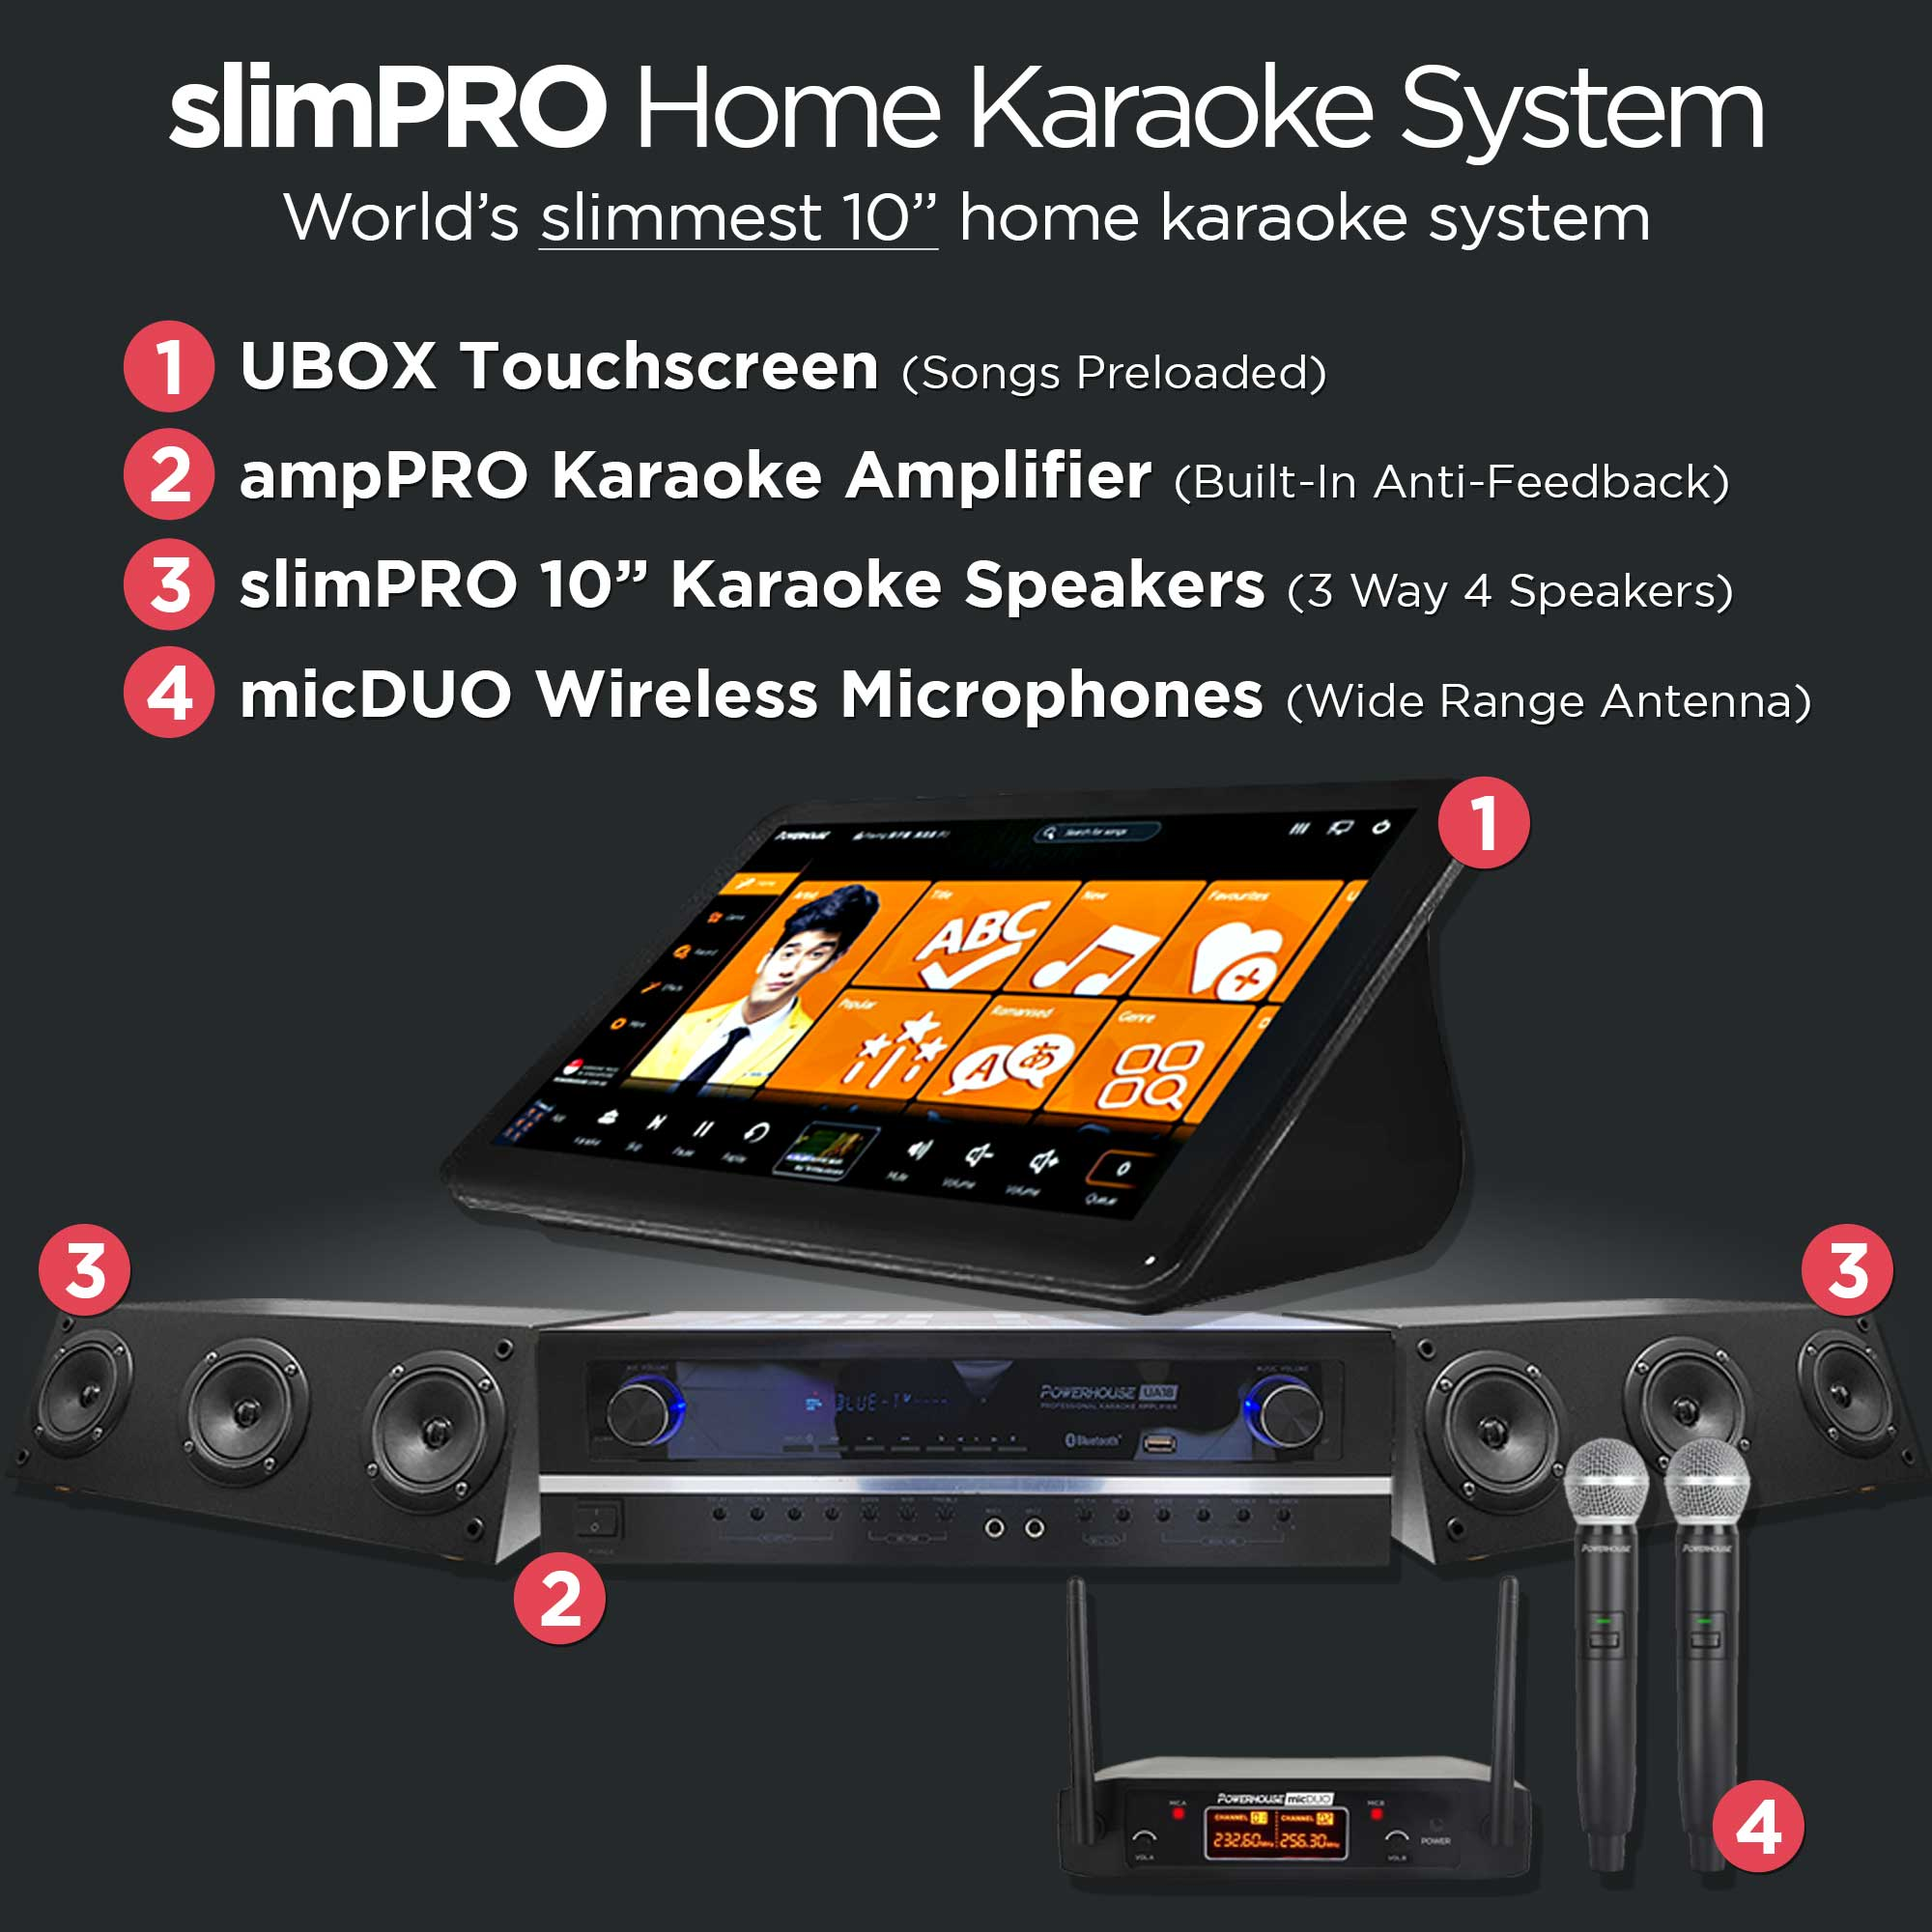 Powerhouse slimPRO Home Karaoke System